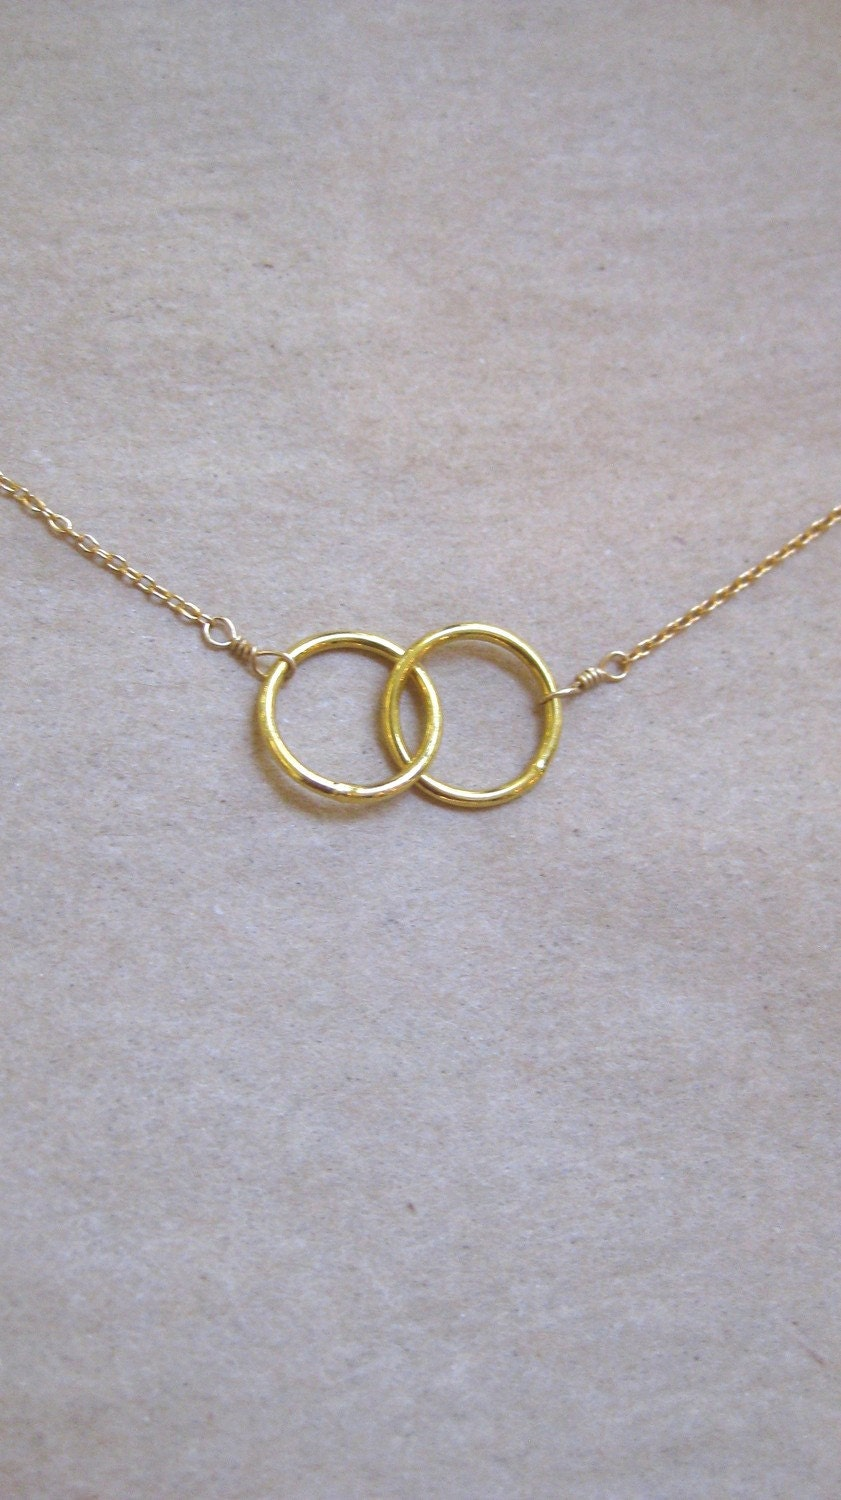 two interlocking gold circles necklace by studioro on etsy